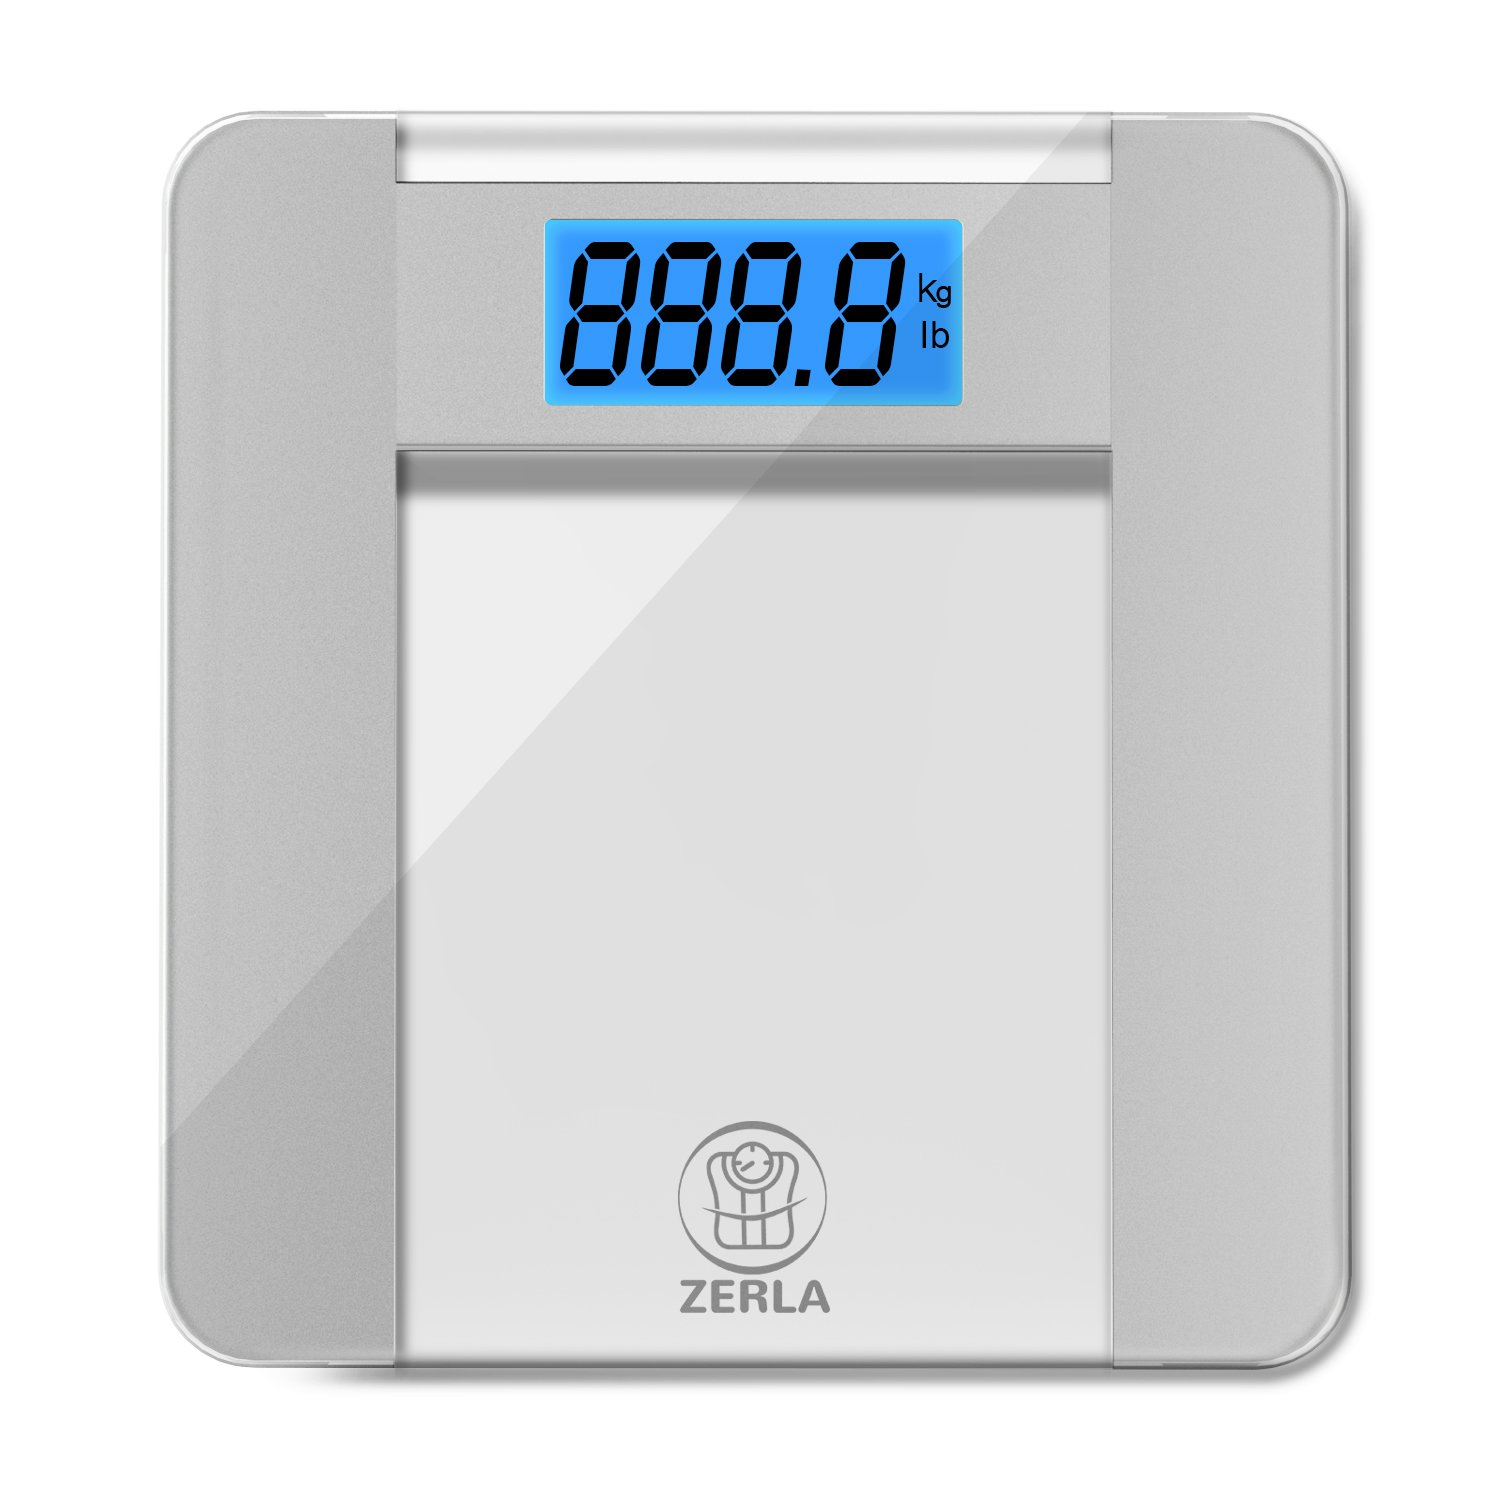 Bathroom scale accuracy consistency - Amazon Com Zerla Digital Bathroom Scale Highly Accurate Digital Scale With Large 4 5 Lcd Display 400lb Capacity Step On Technology High Quality